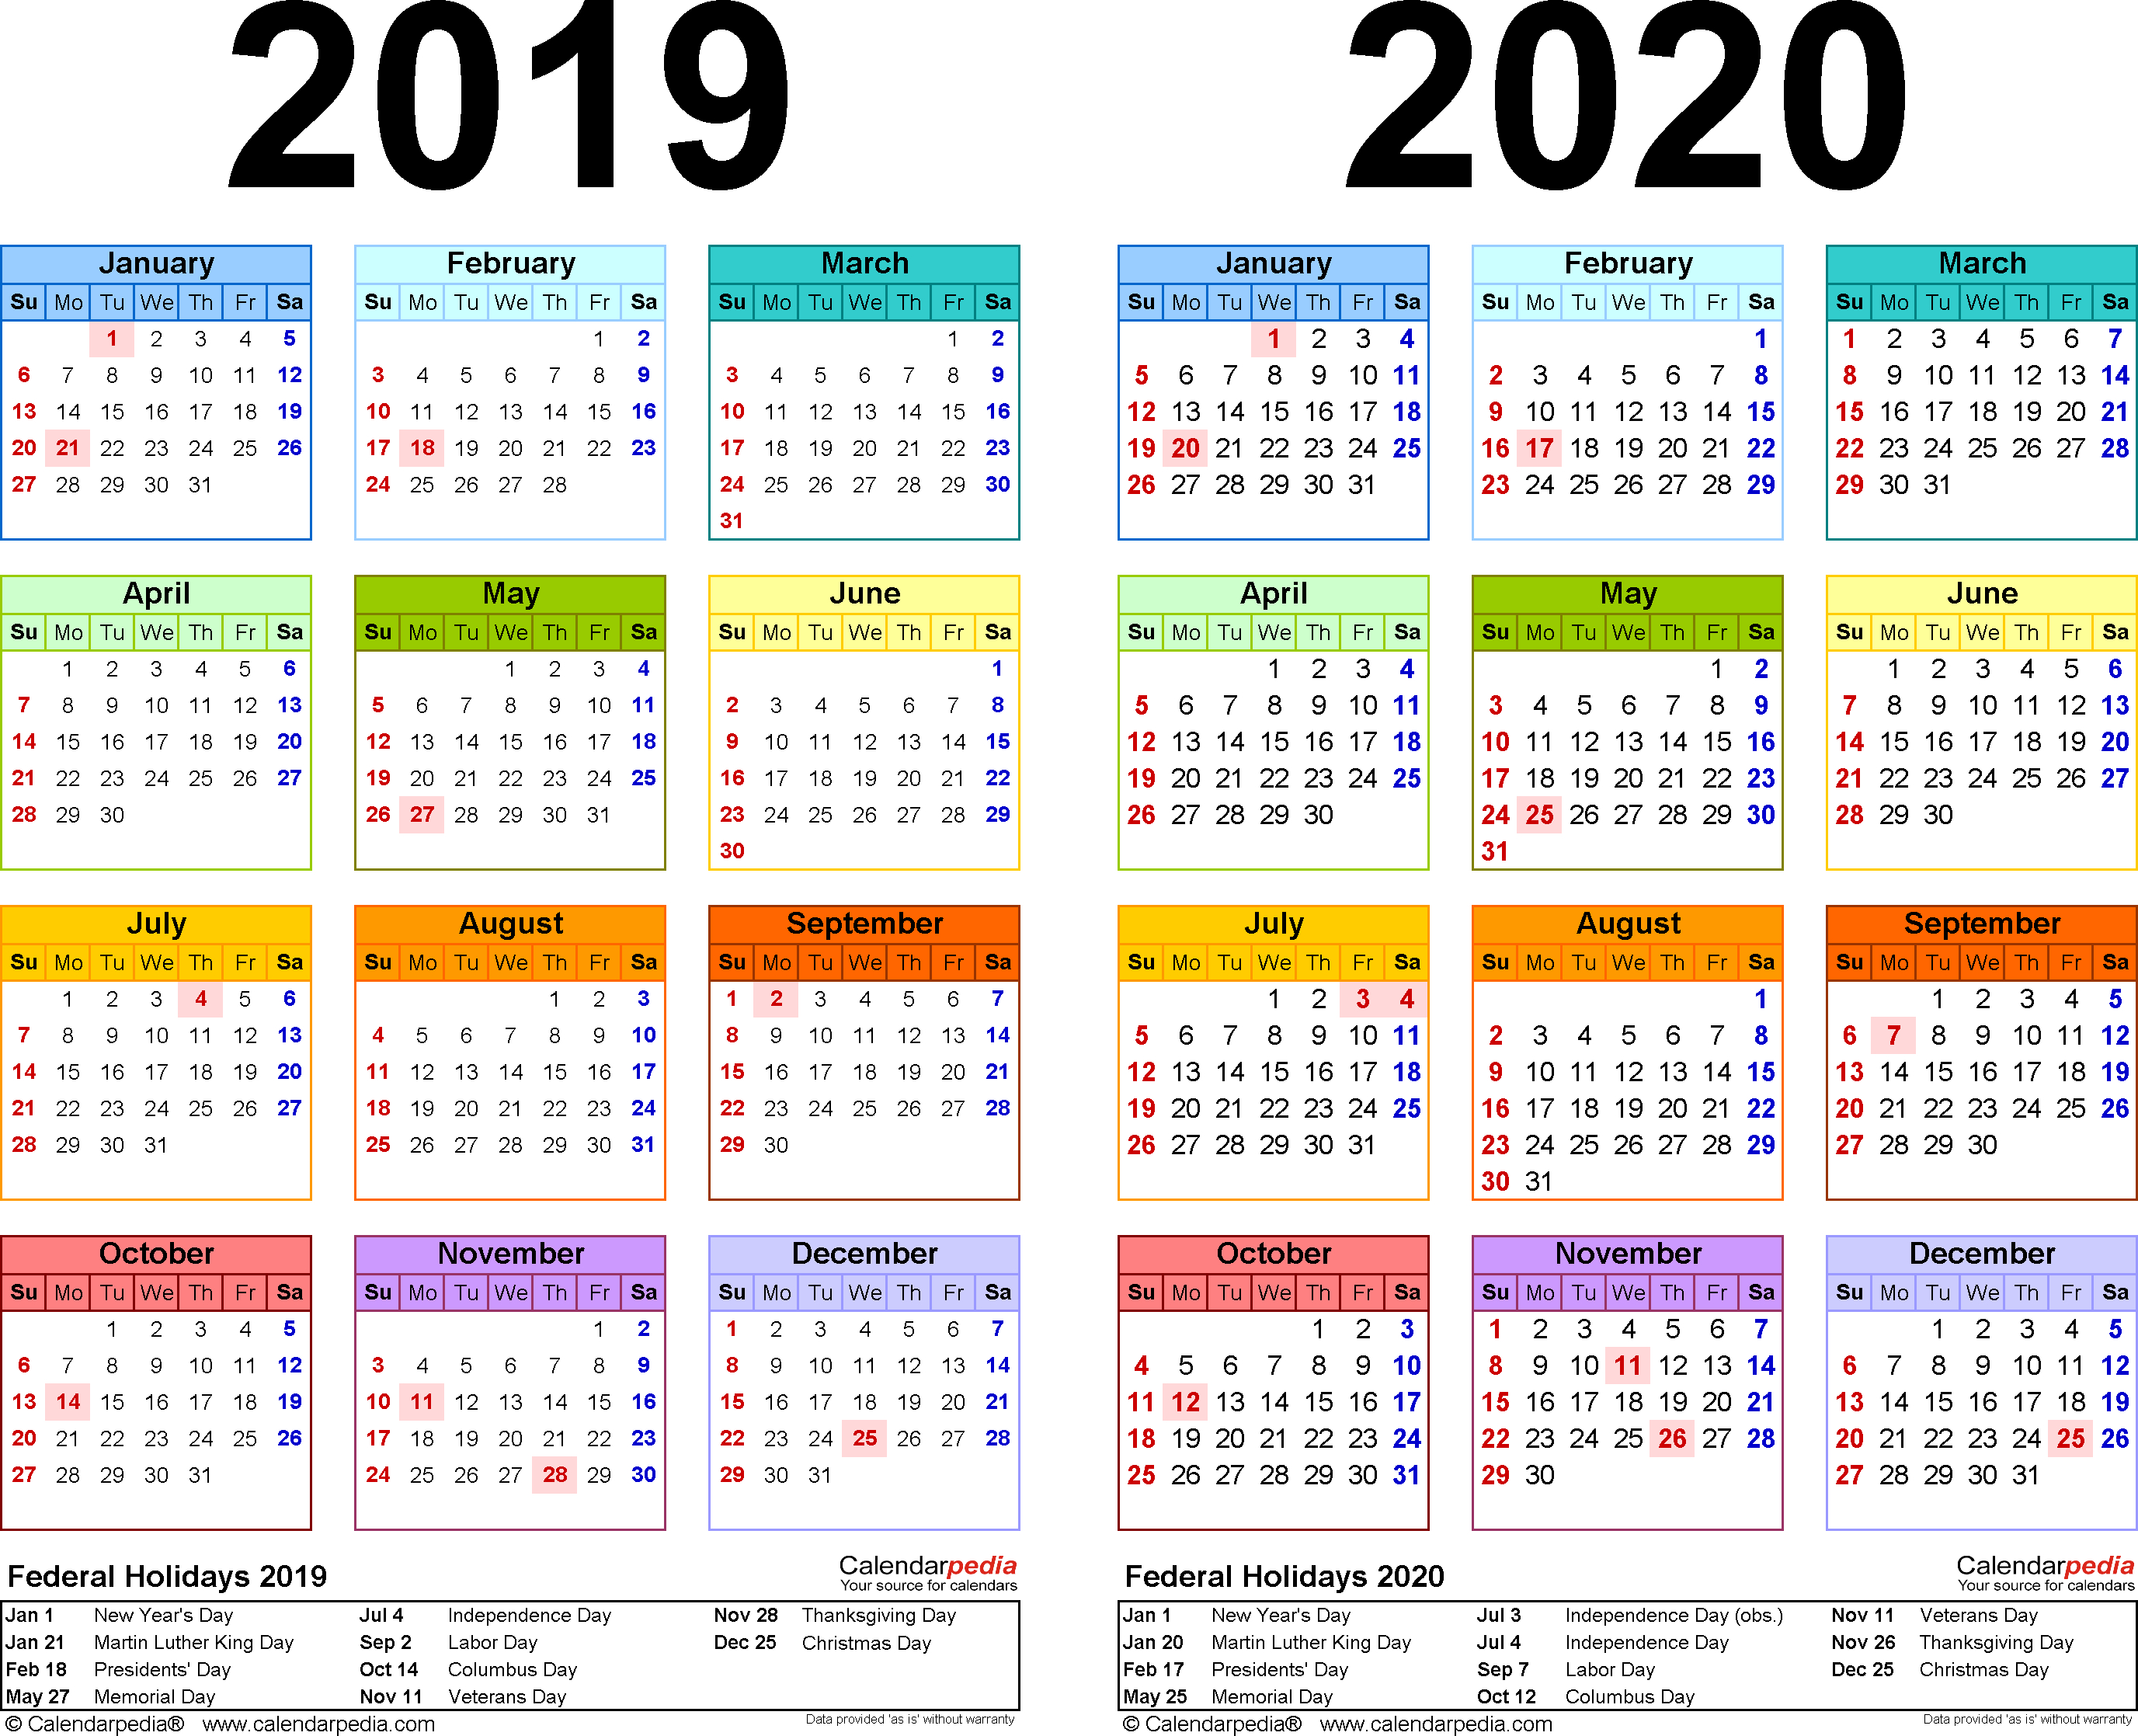 2019 2020 School Year Calendar With Holiday Us - Google Search throughout Calander 2020 We Does The School Close